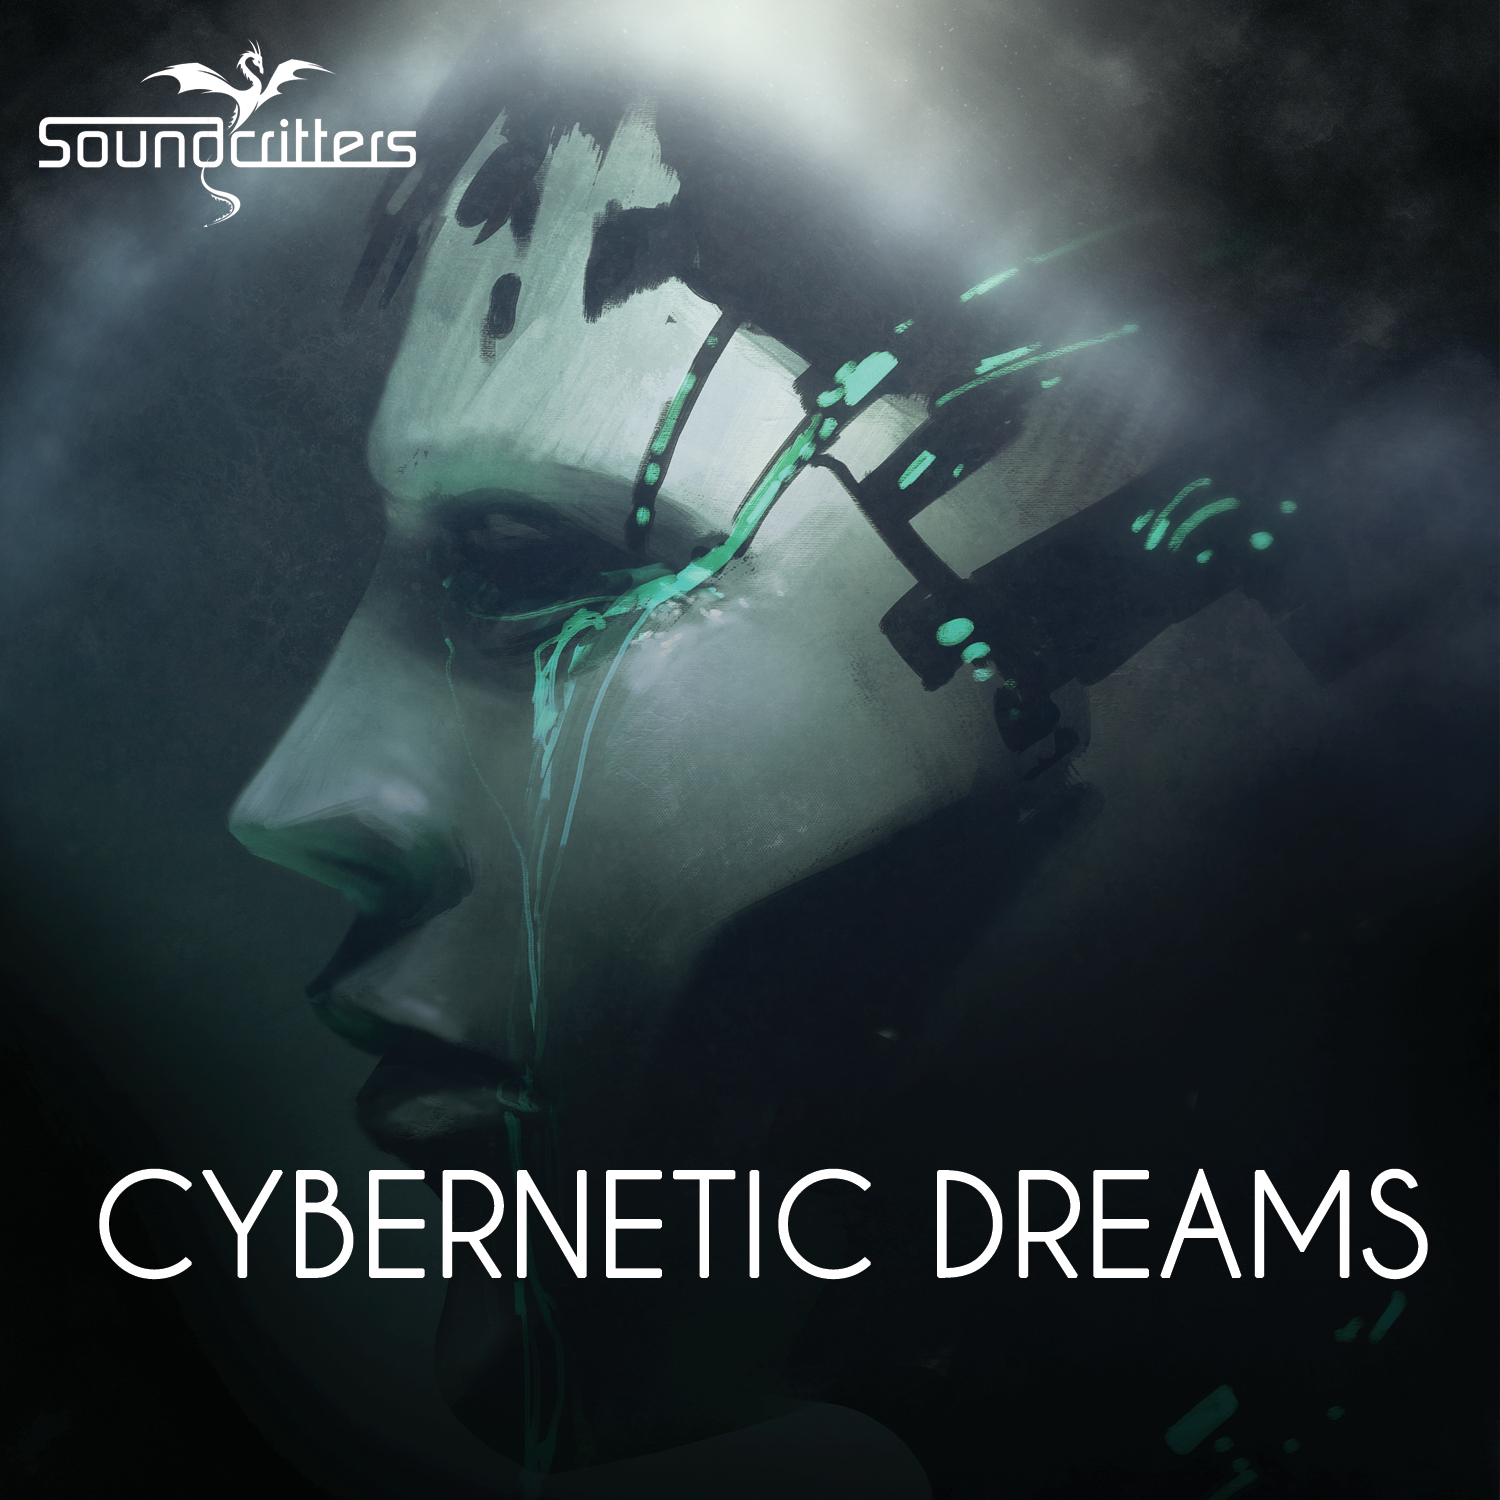 Cybernetic Dreams